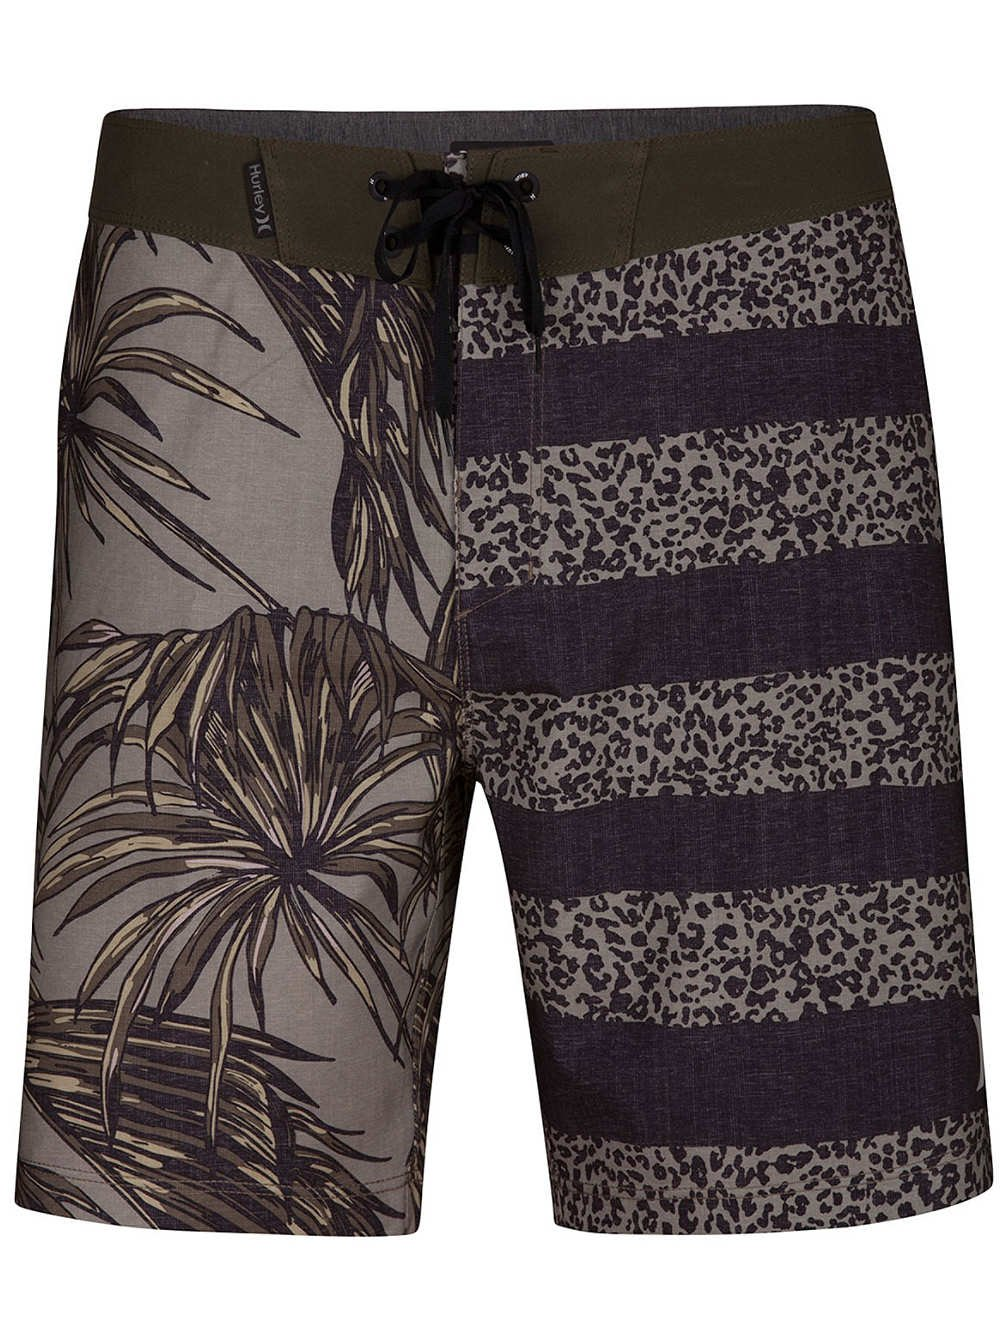 e912fc6a78 Details about Hurley NEW Olive Green Mens USA Size 36 Phantom Floral foot Board  Shorts $55 037